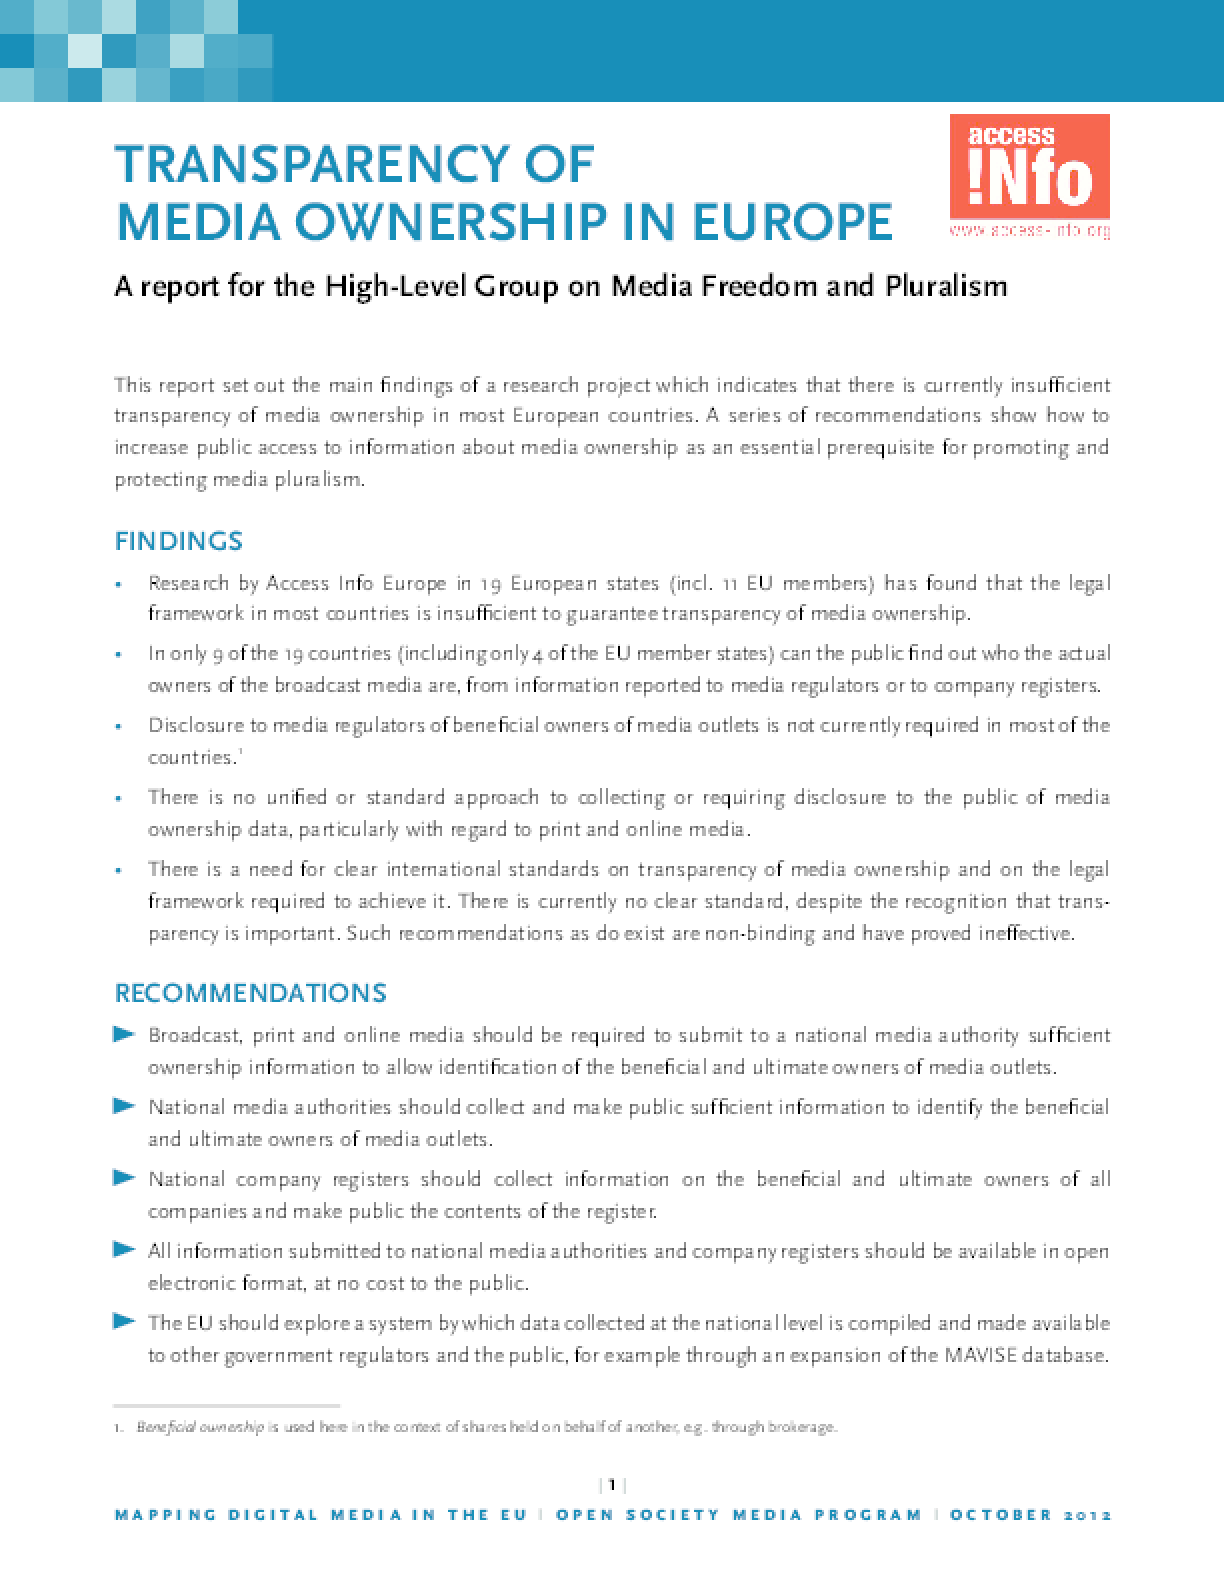 Transparency of Media Ownership in Europe